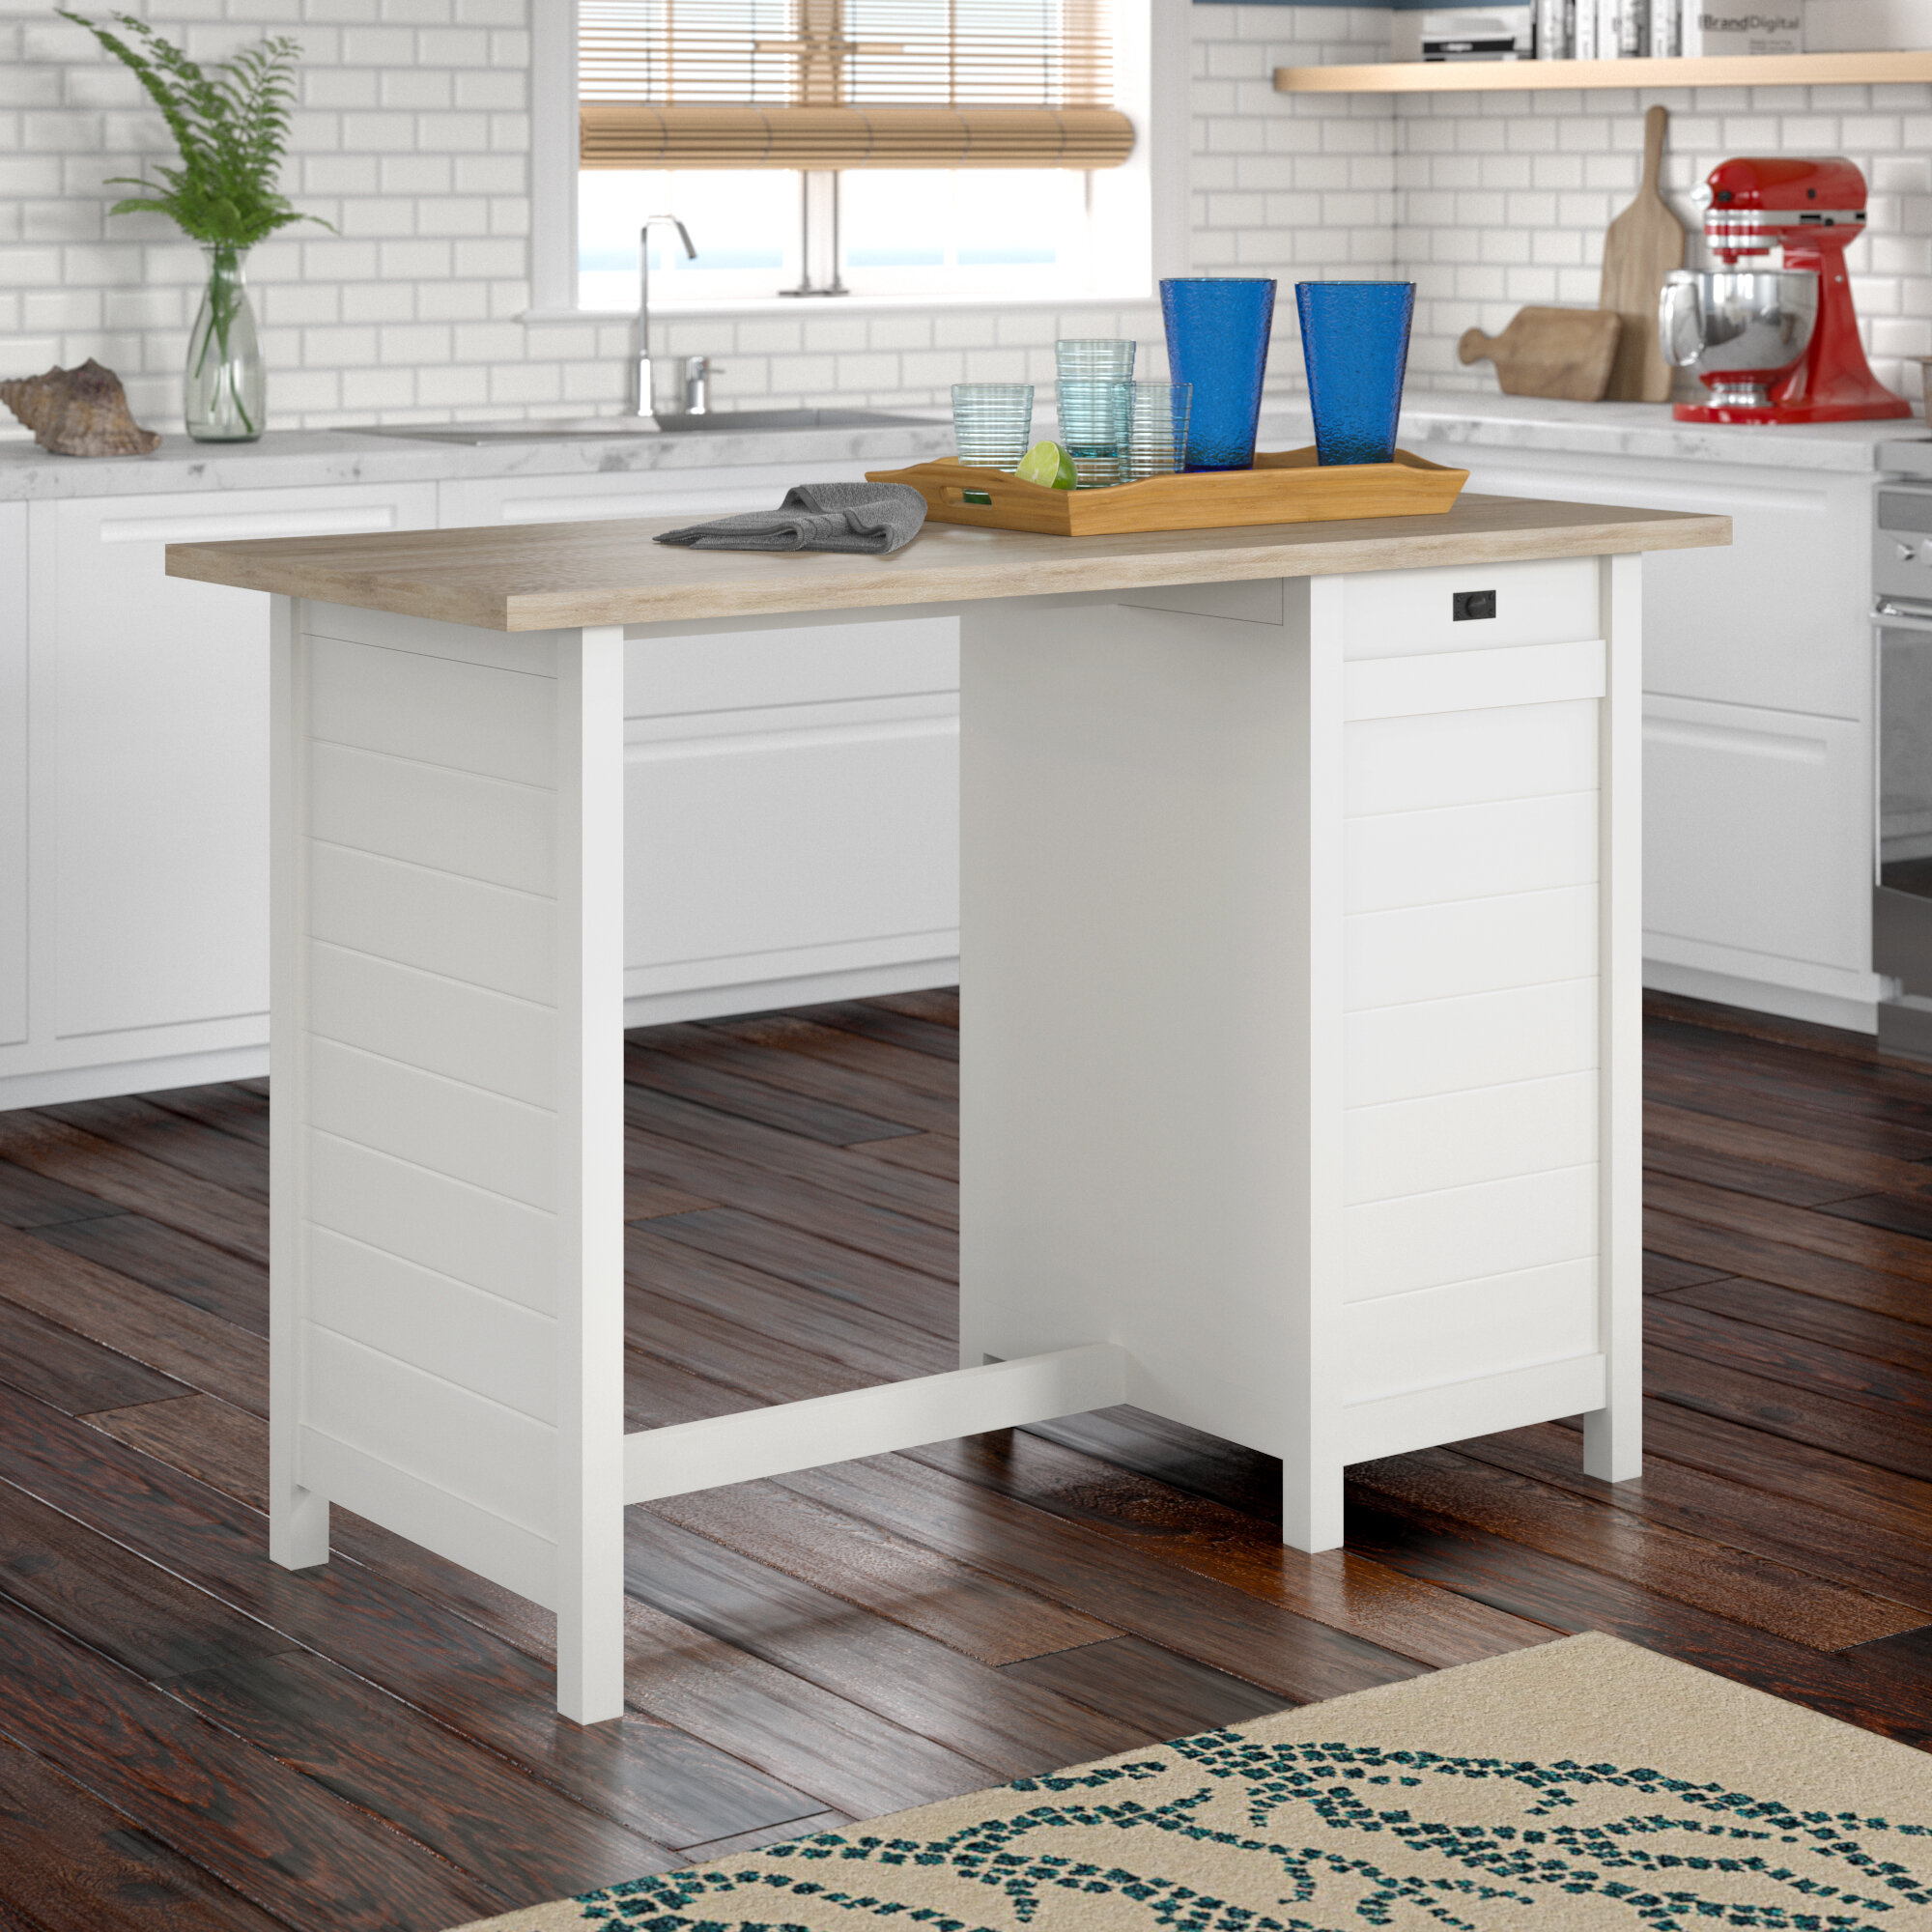 Beachcrest Home Hampton Kitchen Island With Lintel Oak Top Reviews Wayfair